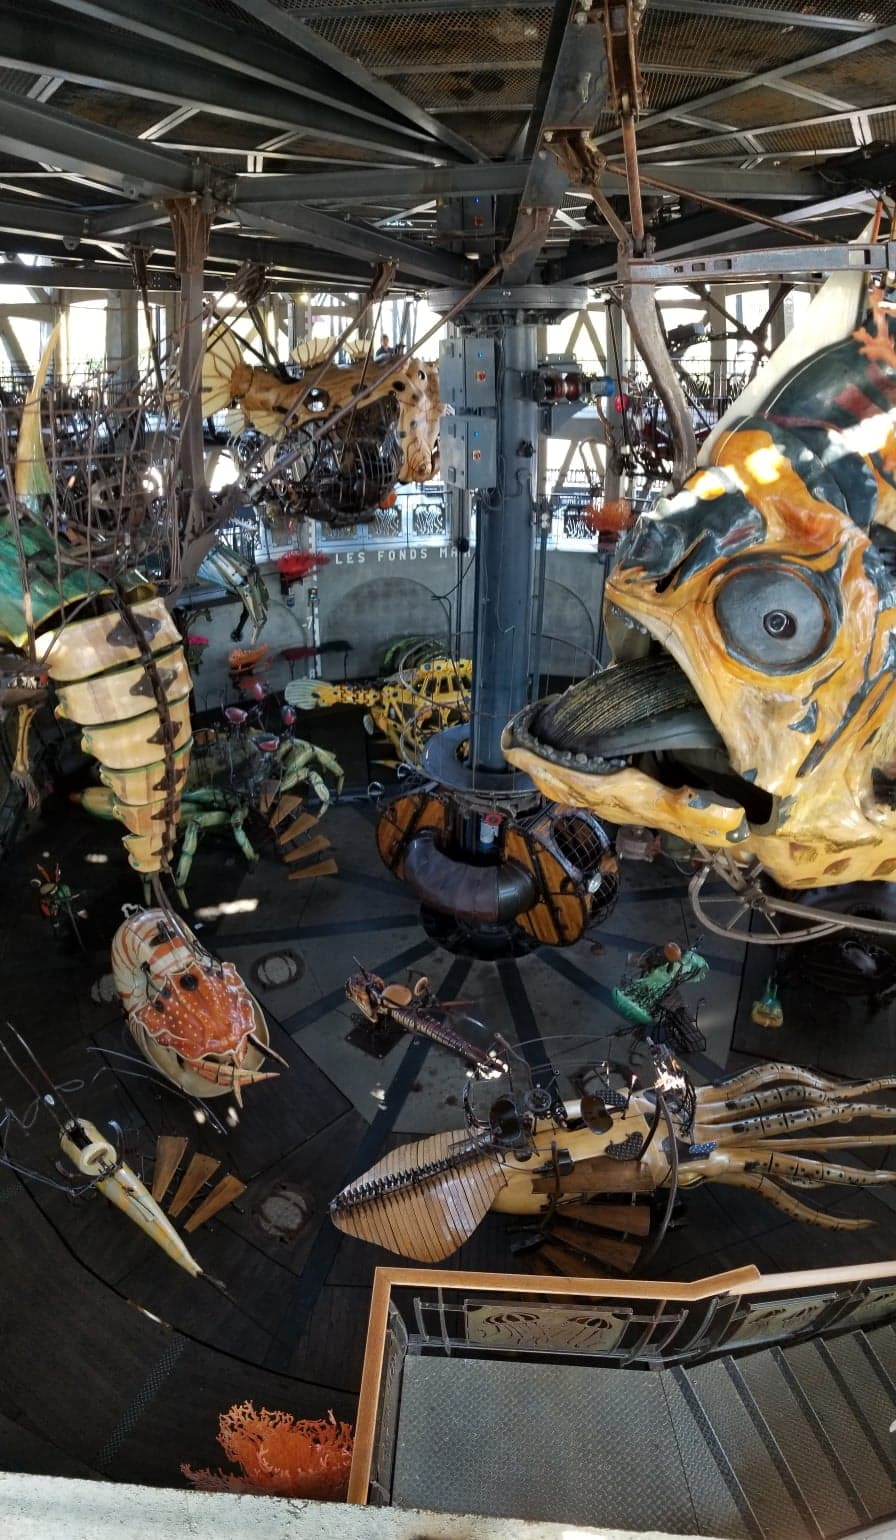 A carousel with various large marine animals